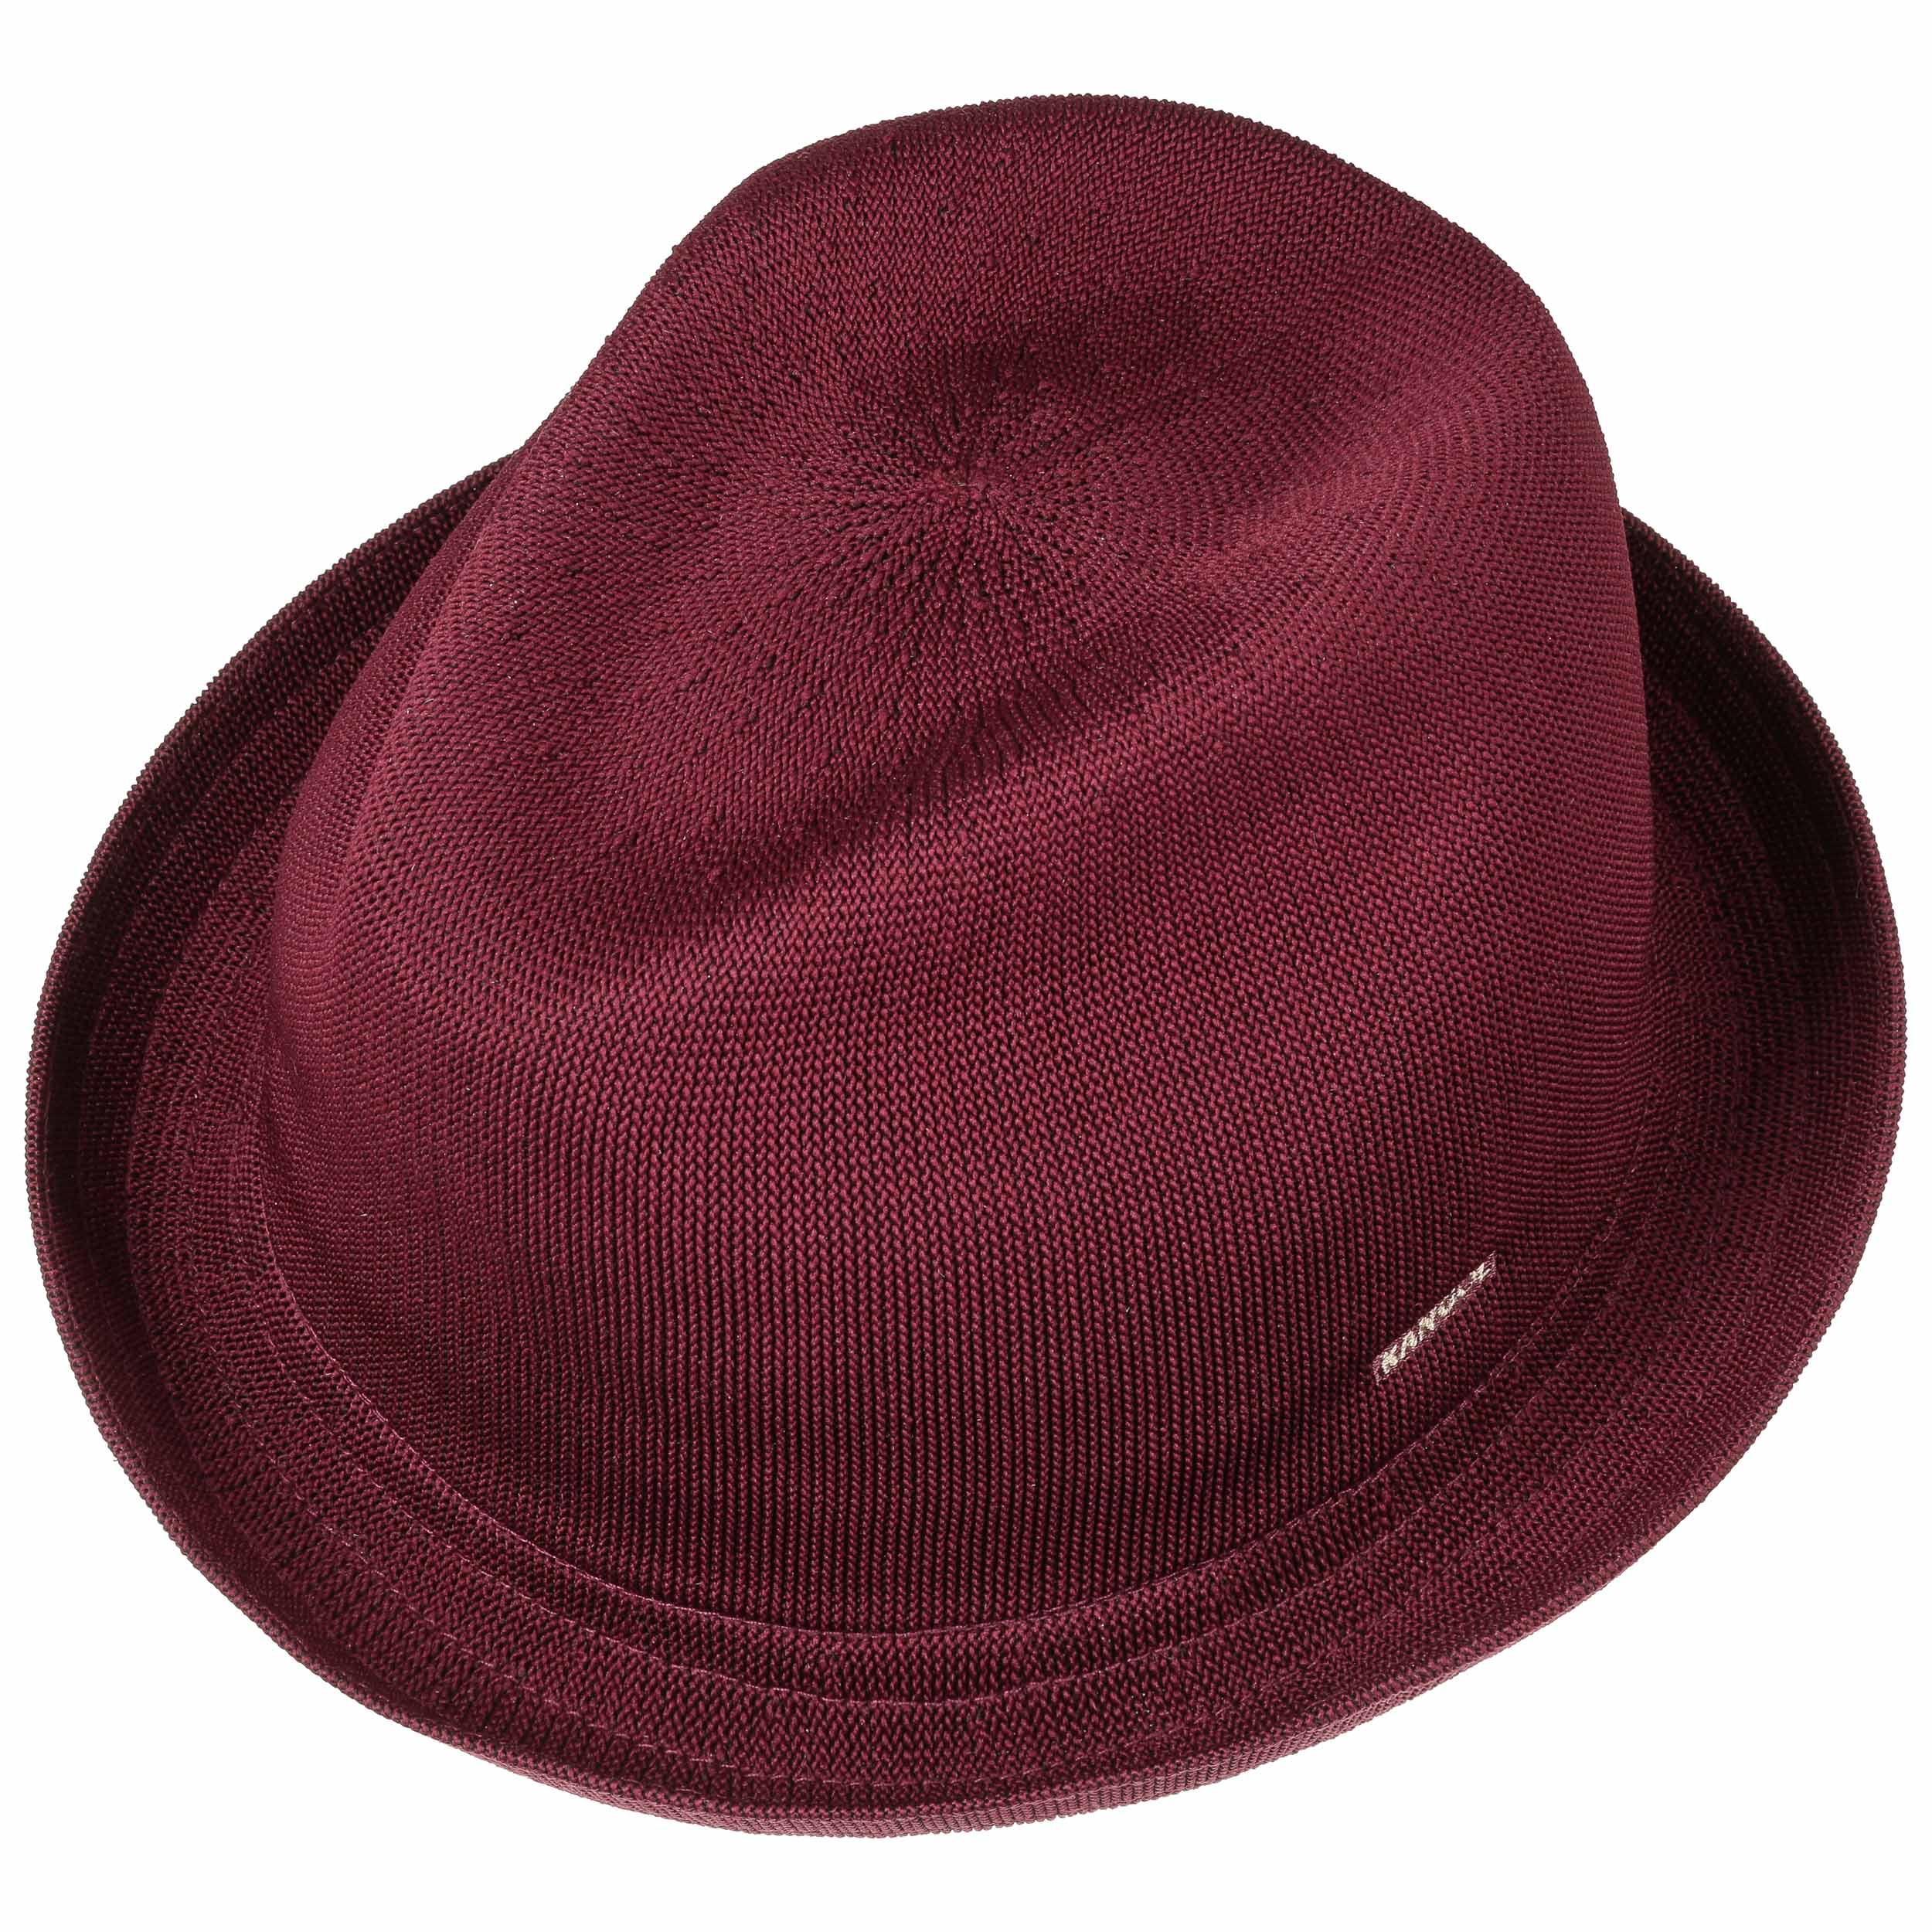 08b7cc7d4d5 ... Kangol Tropic Player Hut - bordeaux Marsala 1 ...